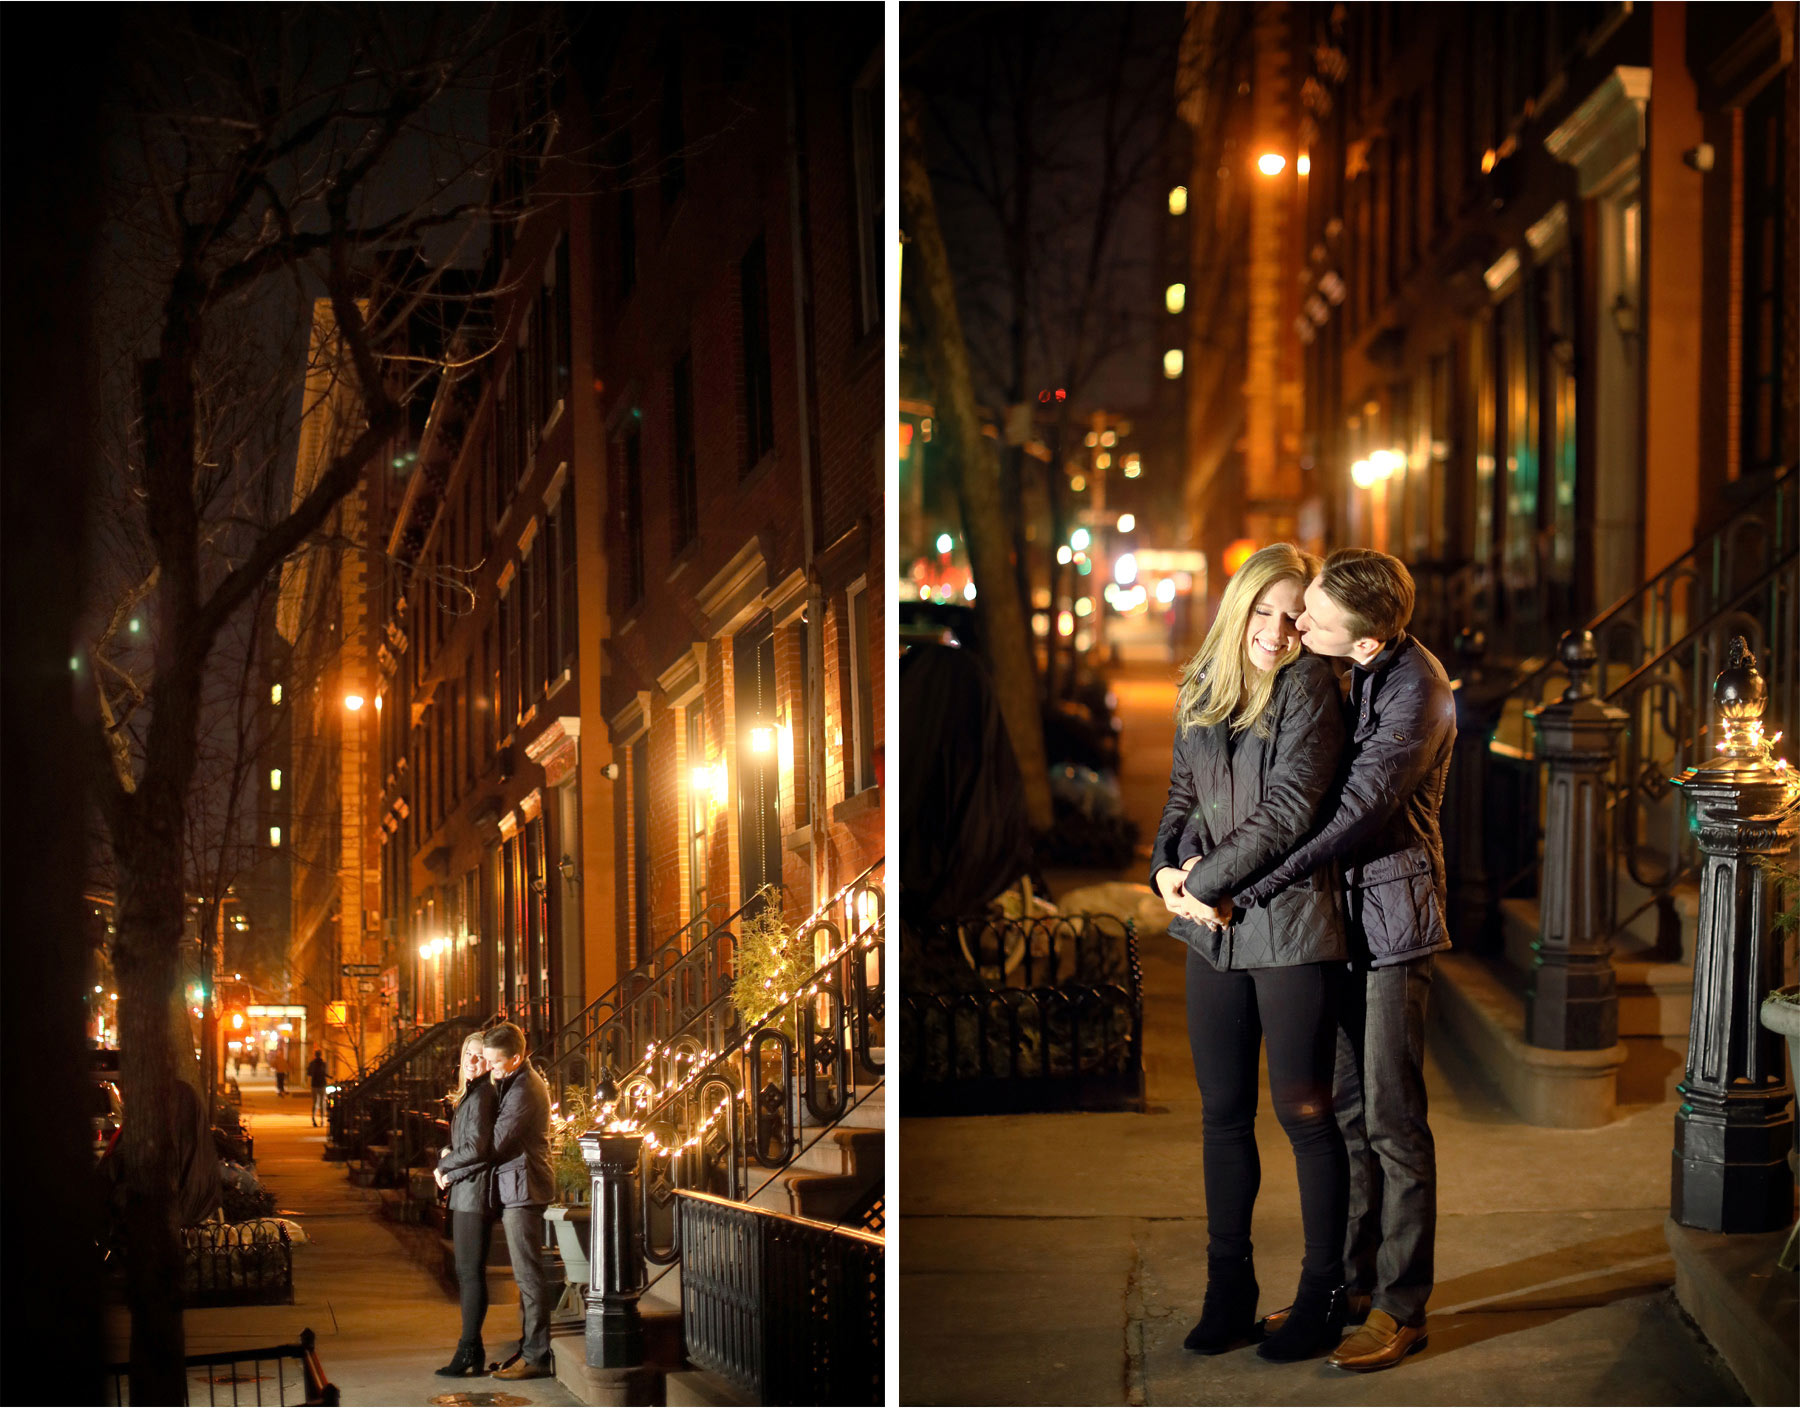 04-New-York-City-Wedding-Photographer-by-Andrew-Vick-Photography-Winter-Engagement-Bride-Groom-Kiss-Night-Embrace-Emily-and-Jon.jpg